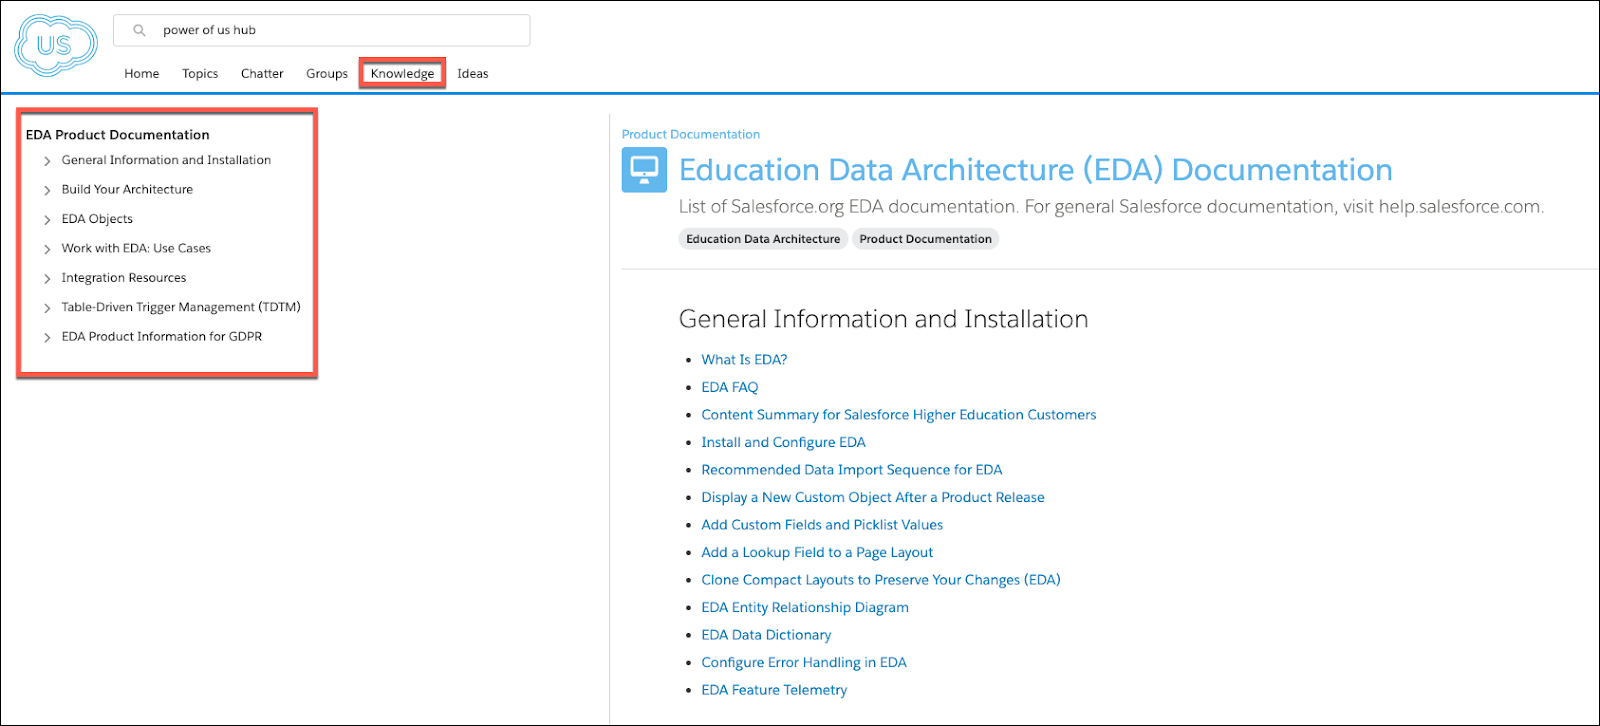 The Power of Us Hub Knowledge tab and the table of contents of EDA Product Documentation.